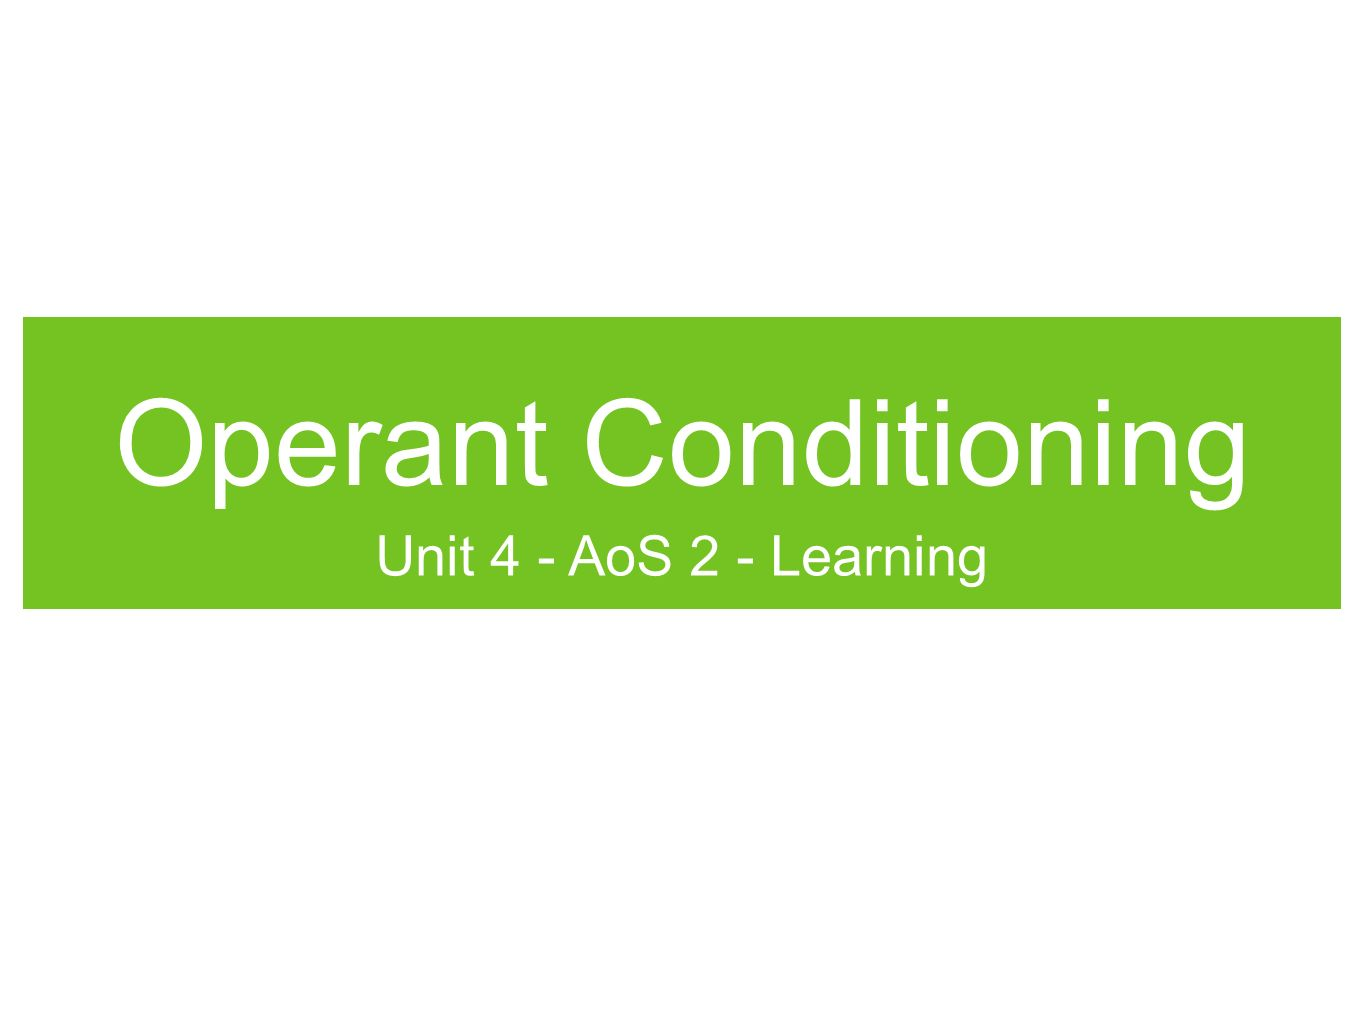 Operant Conditioning Unit 4 - AoS 2 - Learning